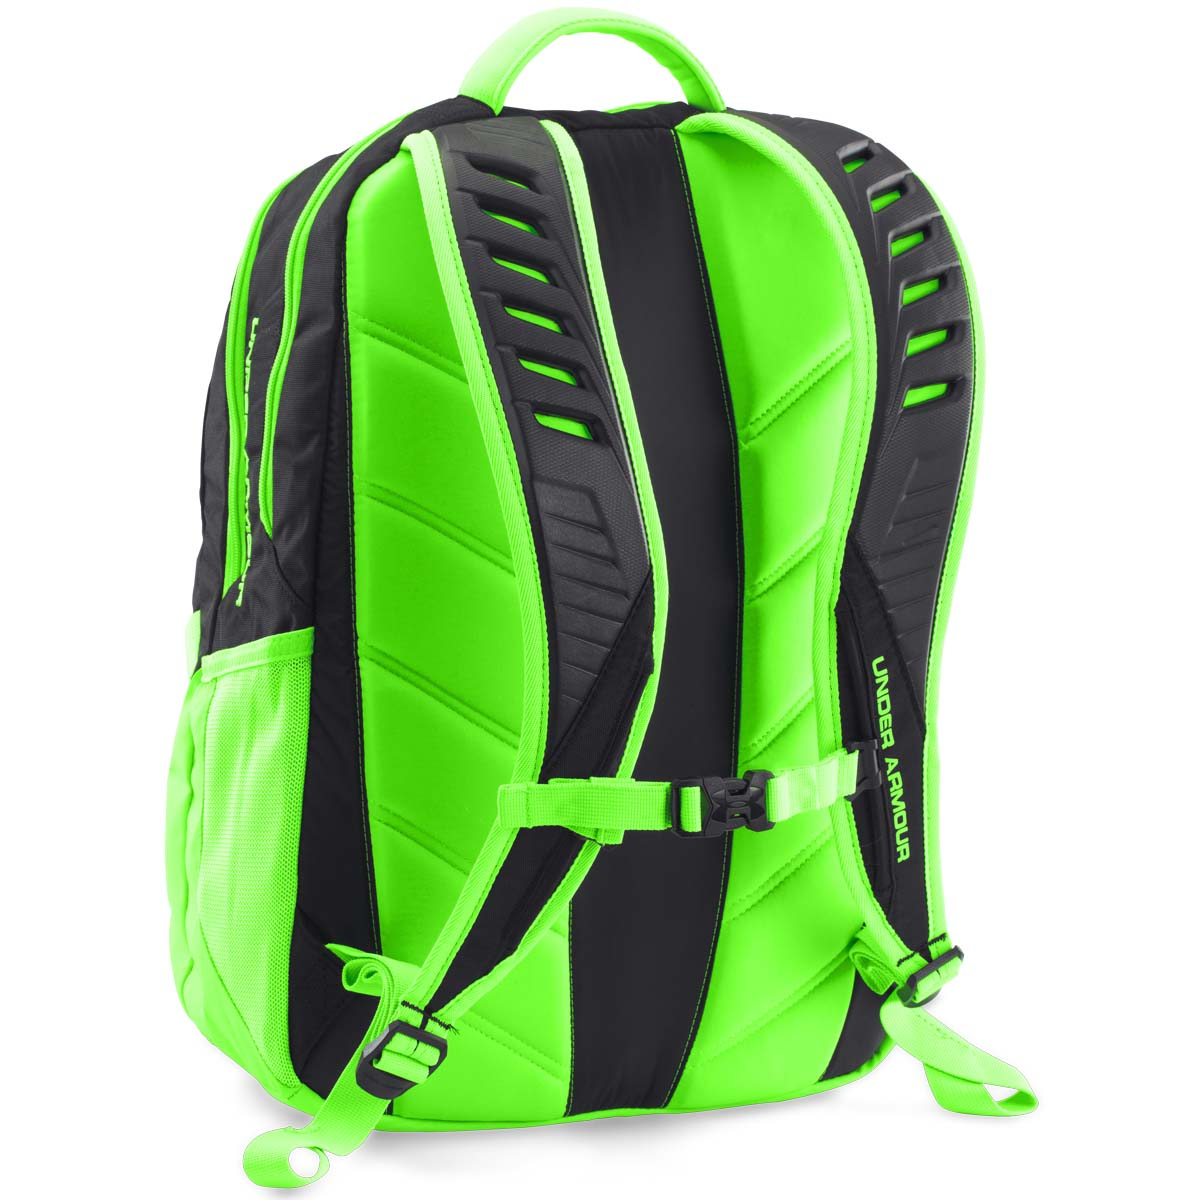 fae933763e Under Armour 2015 UA Camden Backpack II Rucksack Storm Gym Sports ...